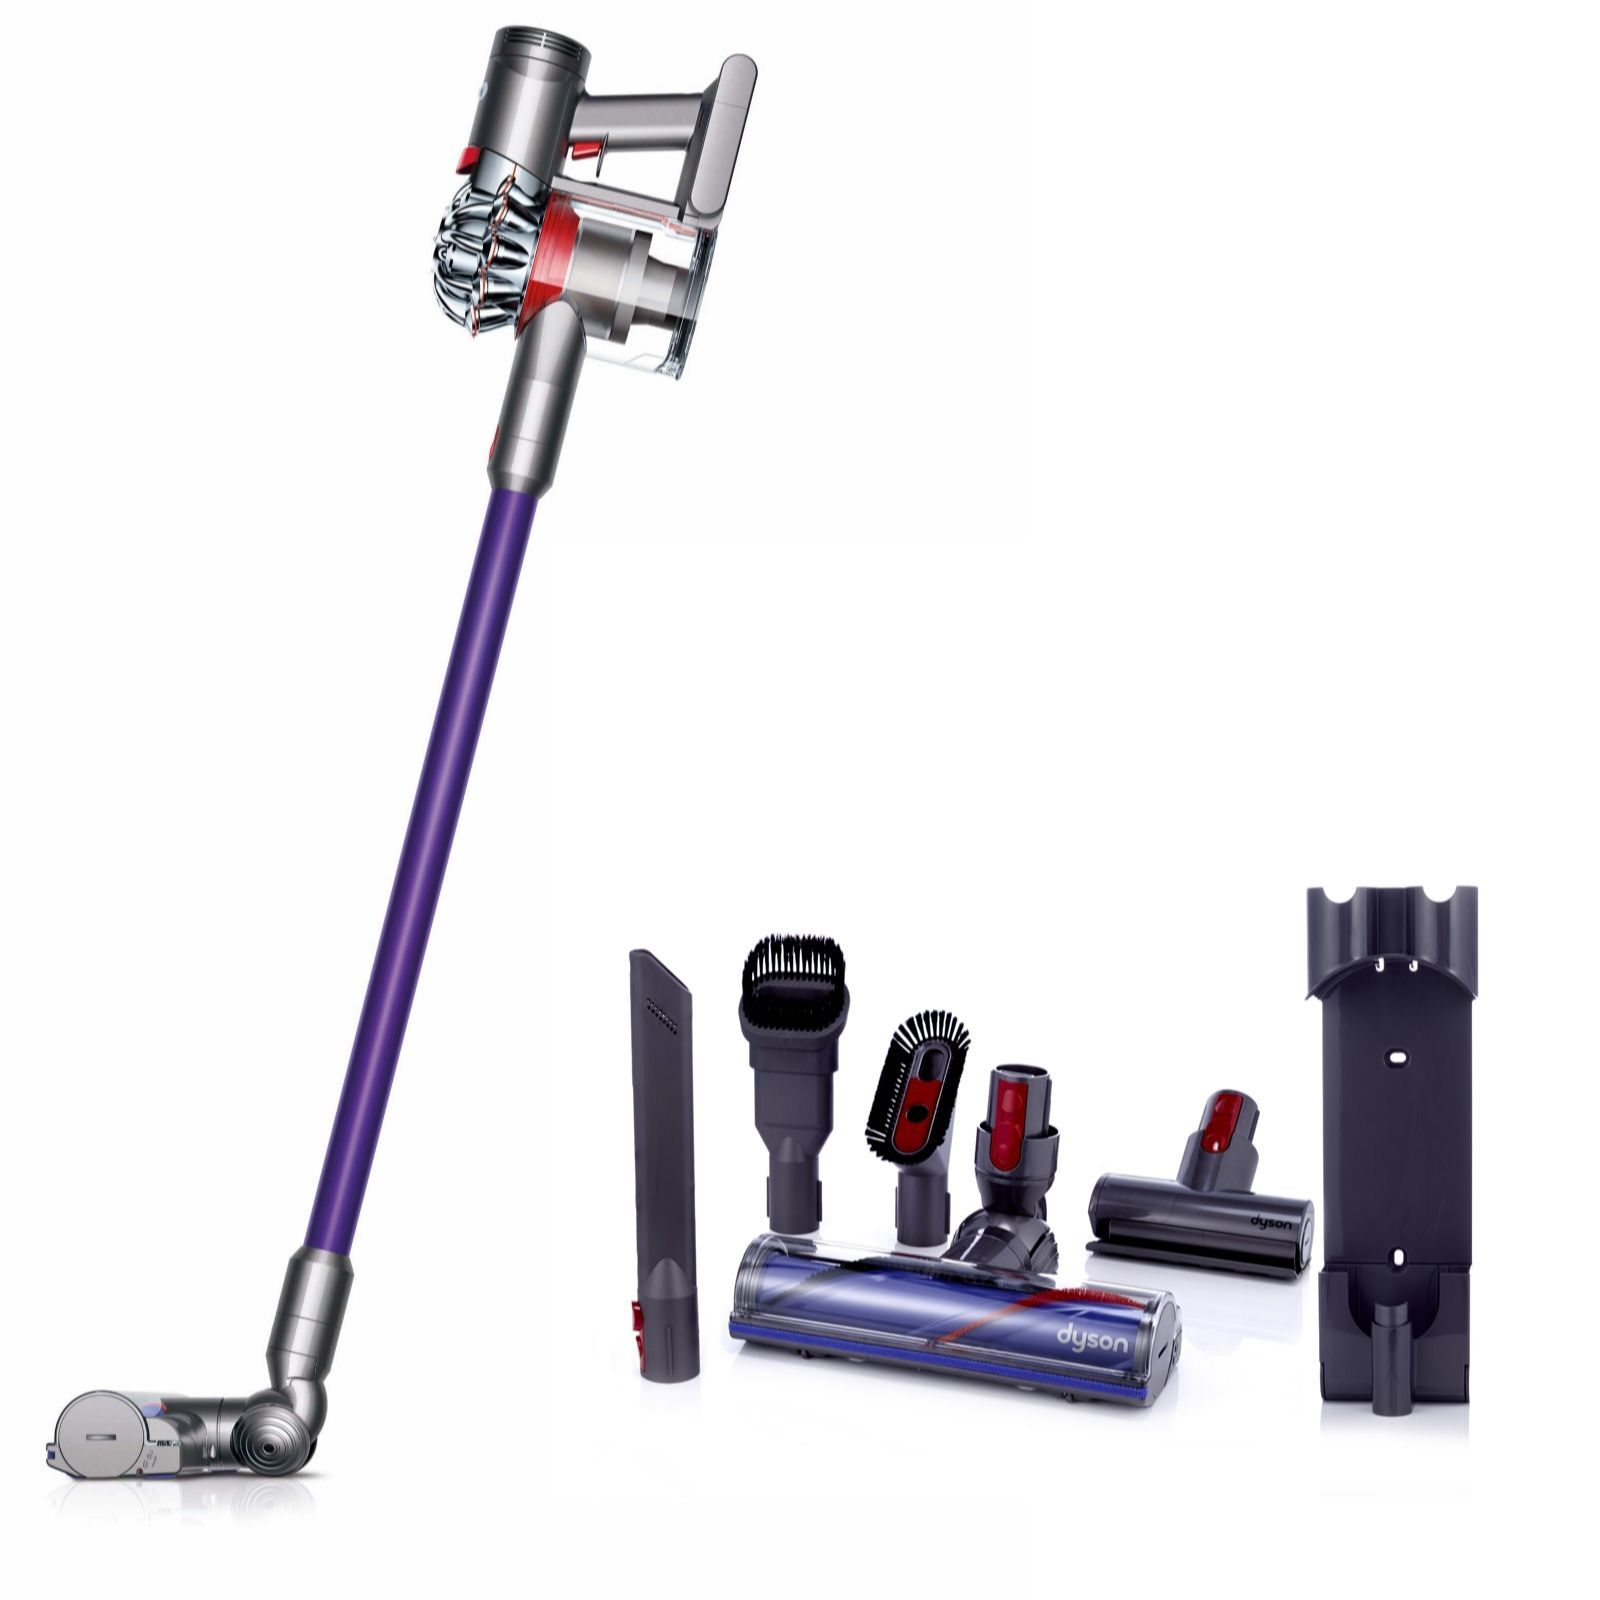 dyson v7 animal cordless vacuum cleaner knees home and electrical. Black Bedroom Furniture Sets. Home Design Ideas